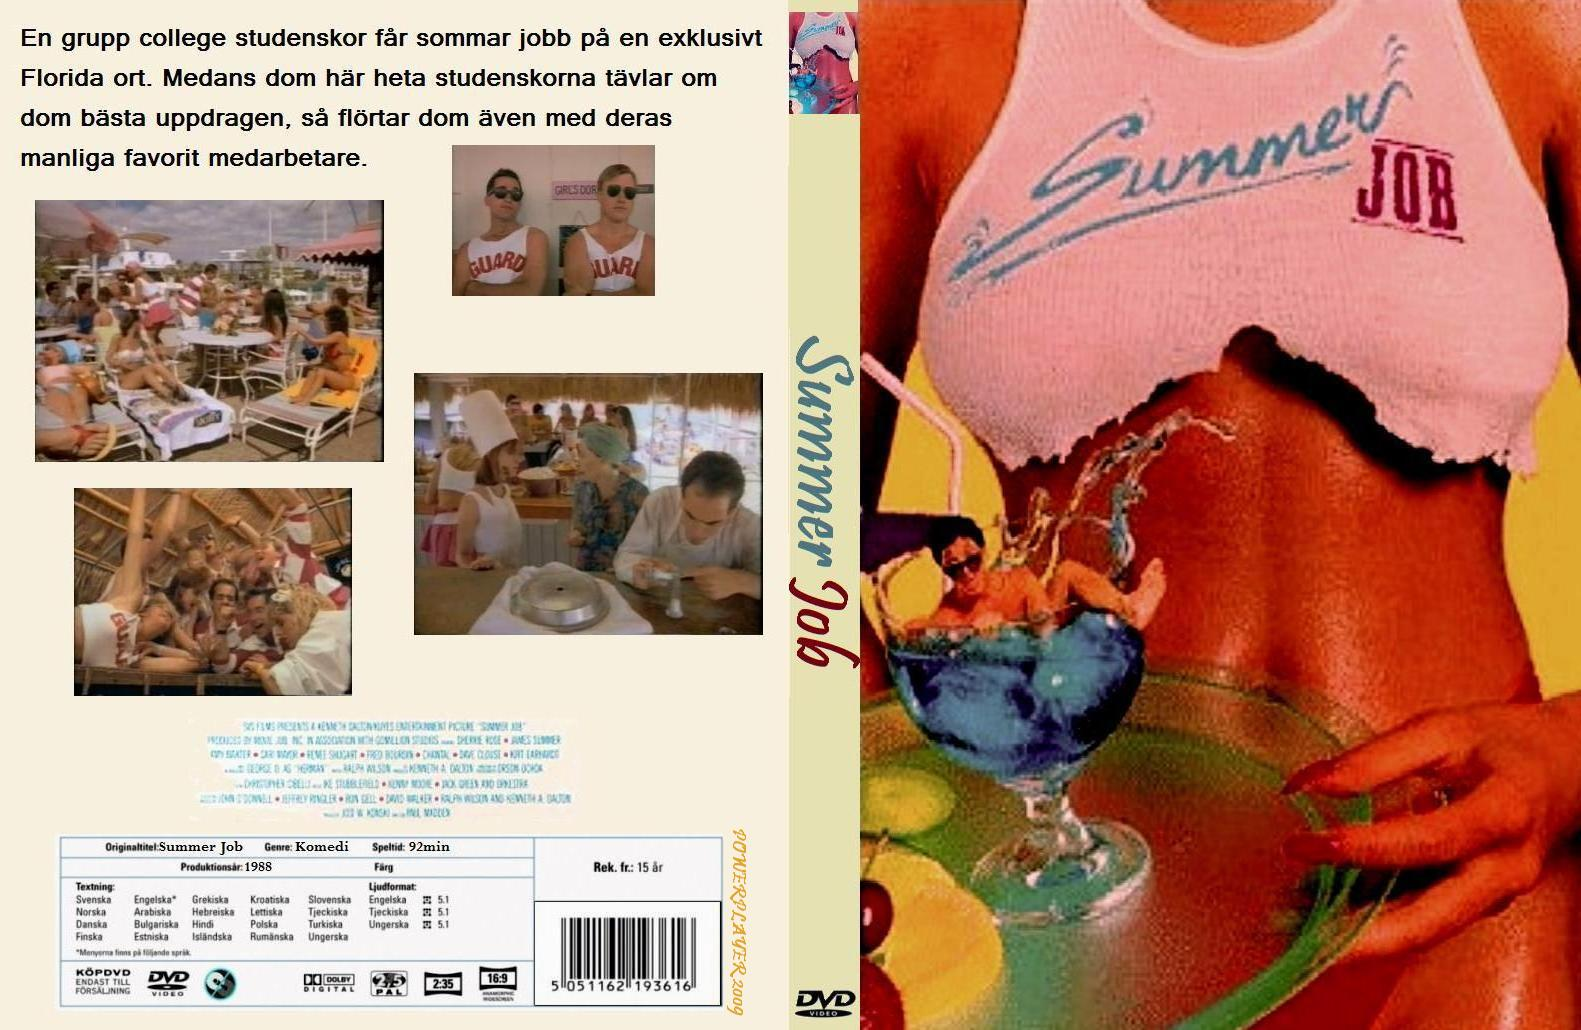 covers box sk summer job 1989 high quality dvd blueray cover has been resized